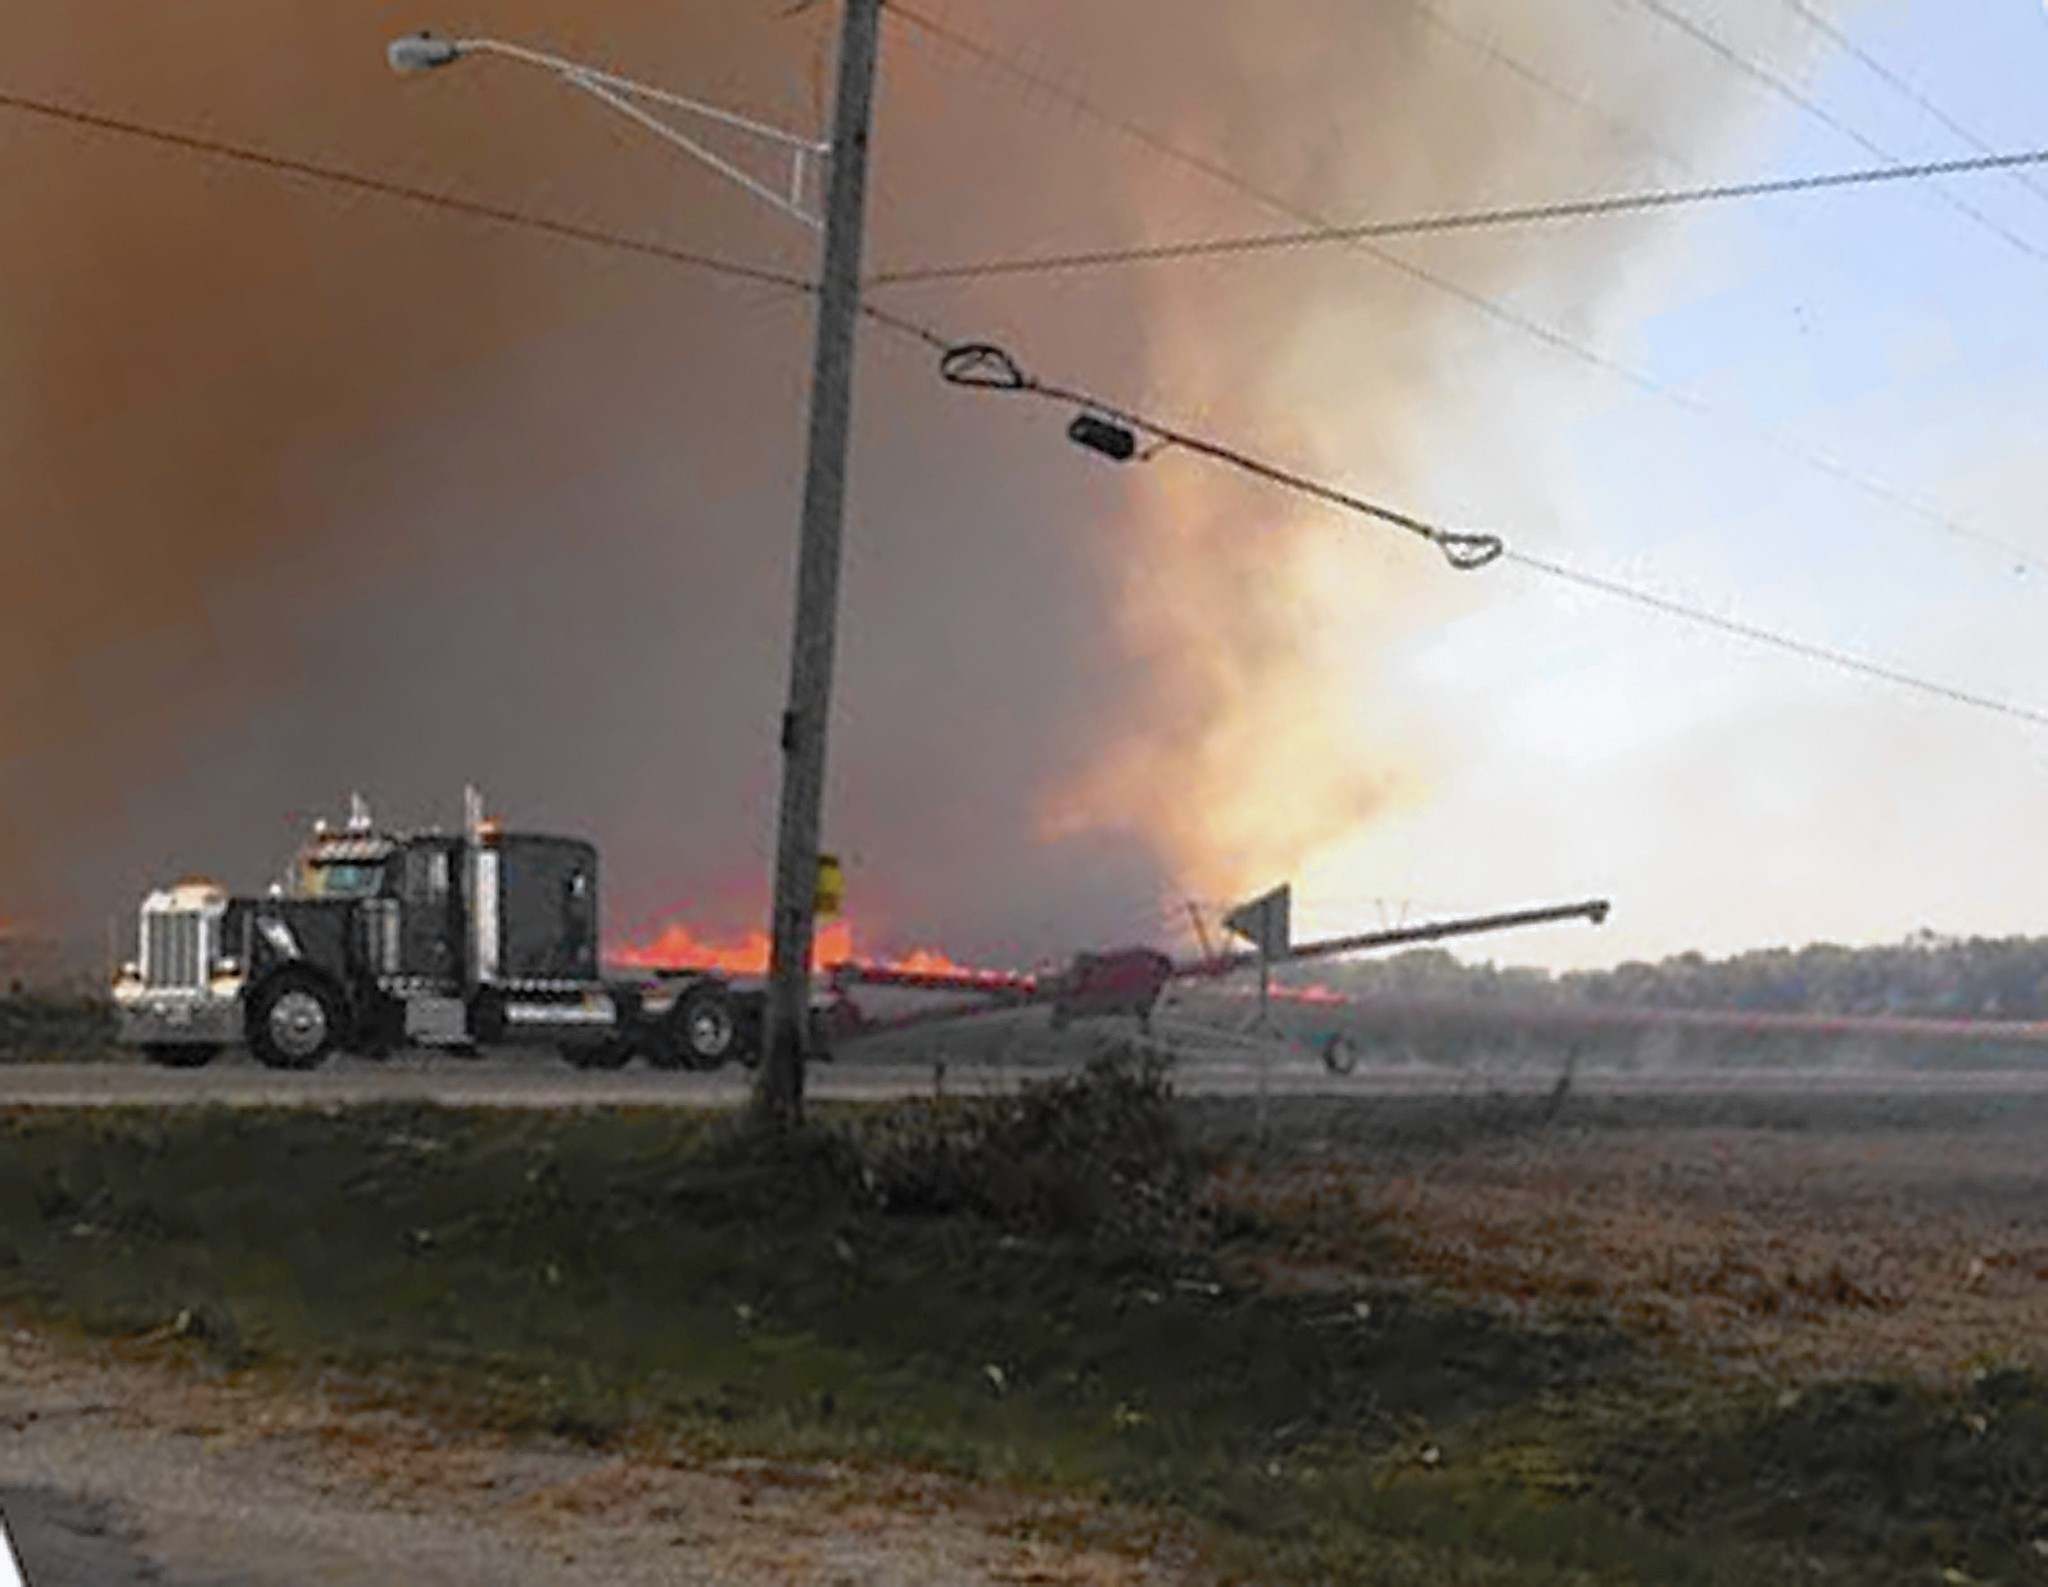 Illinois will county manhattan - Will County Residents Relieved After Raging Cornfields Fire Daily Southtown